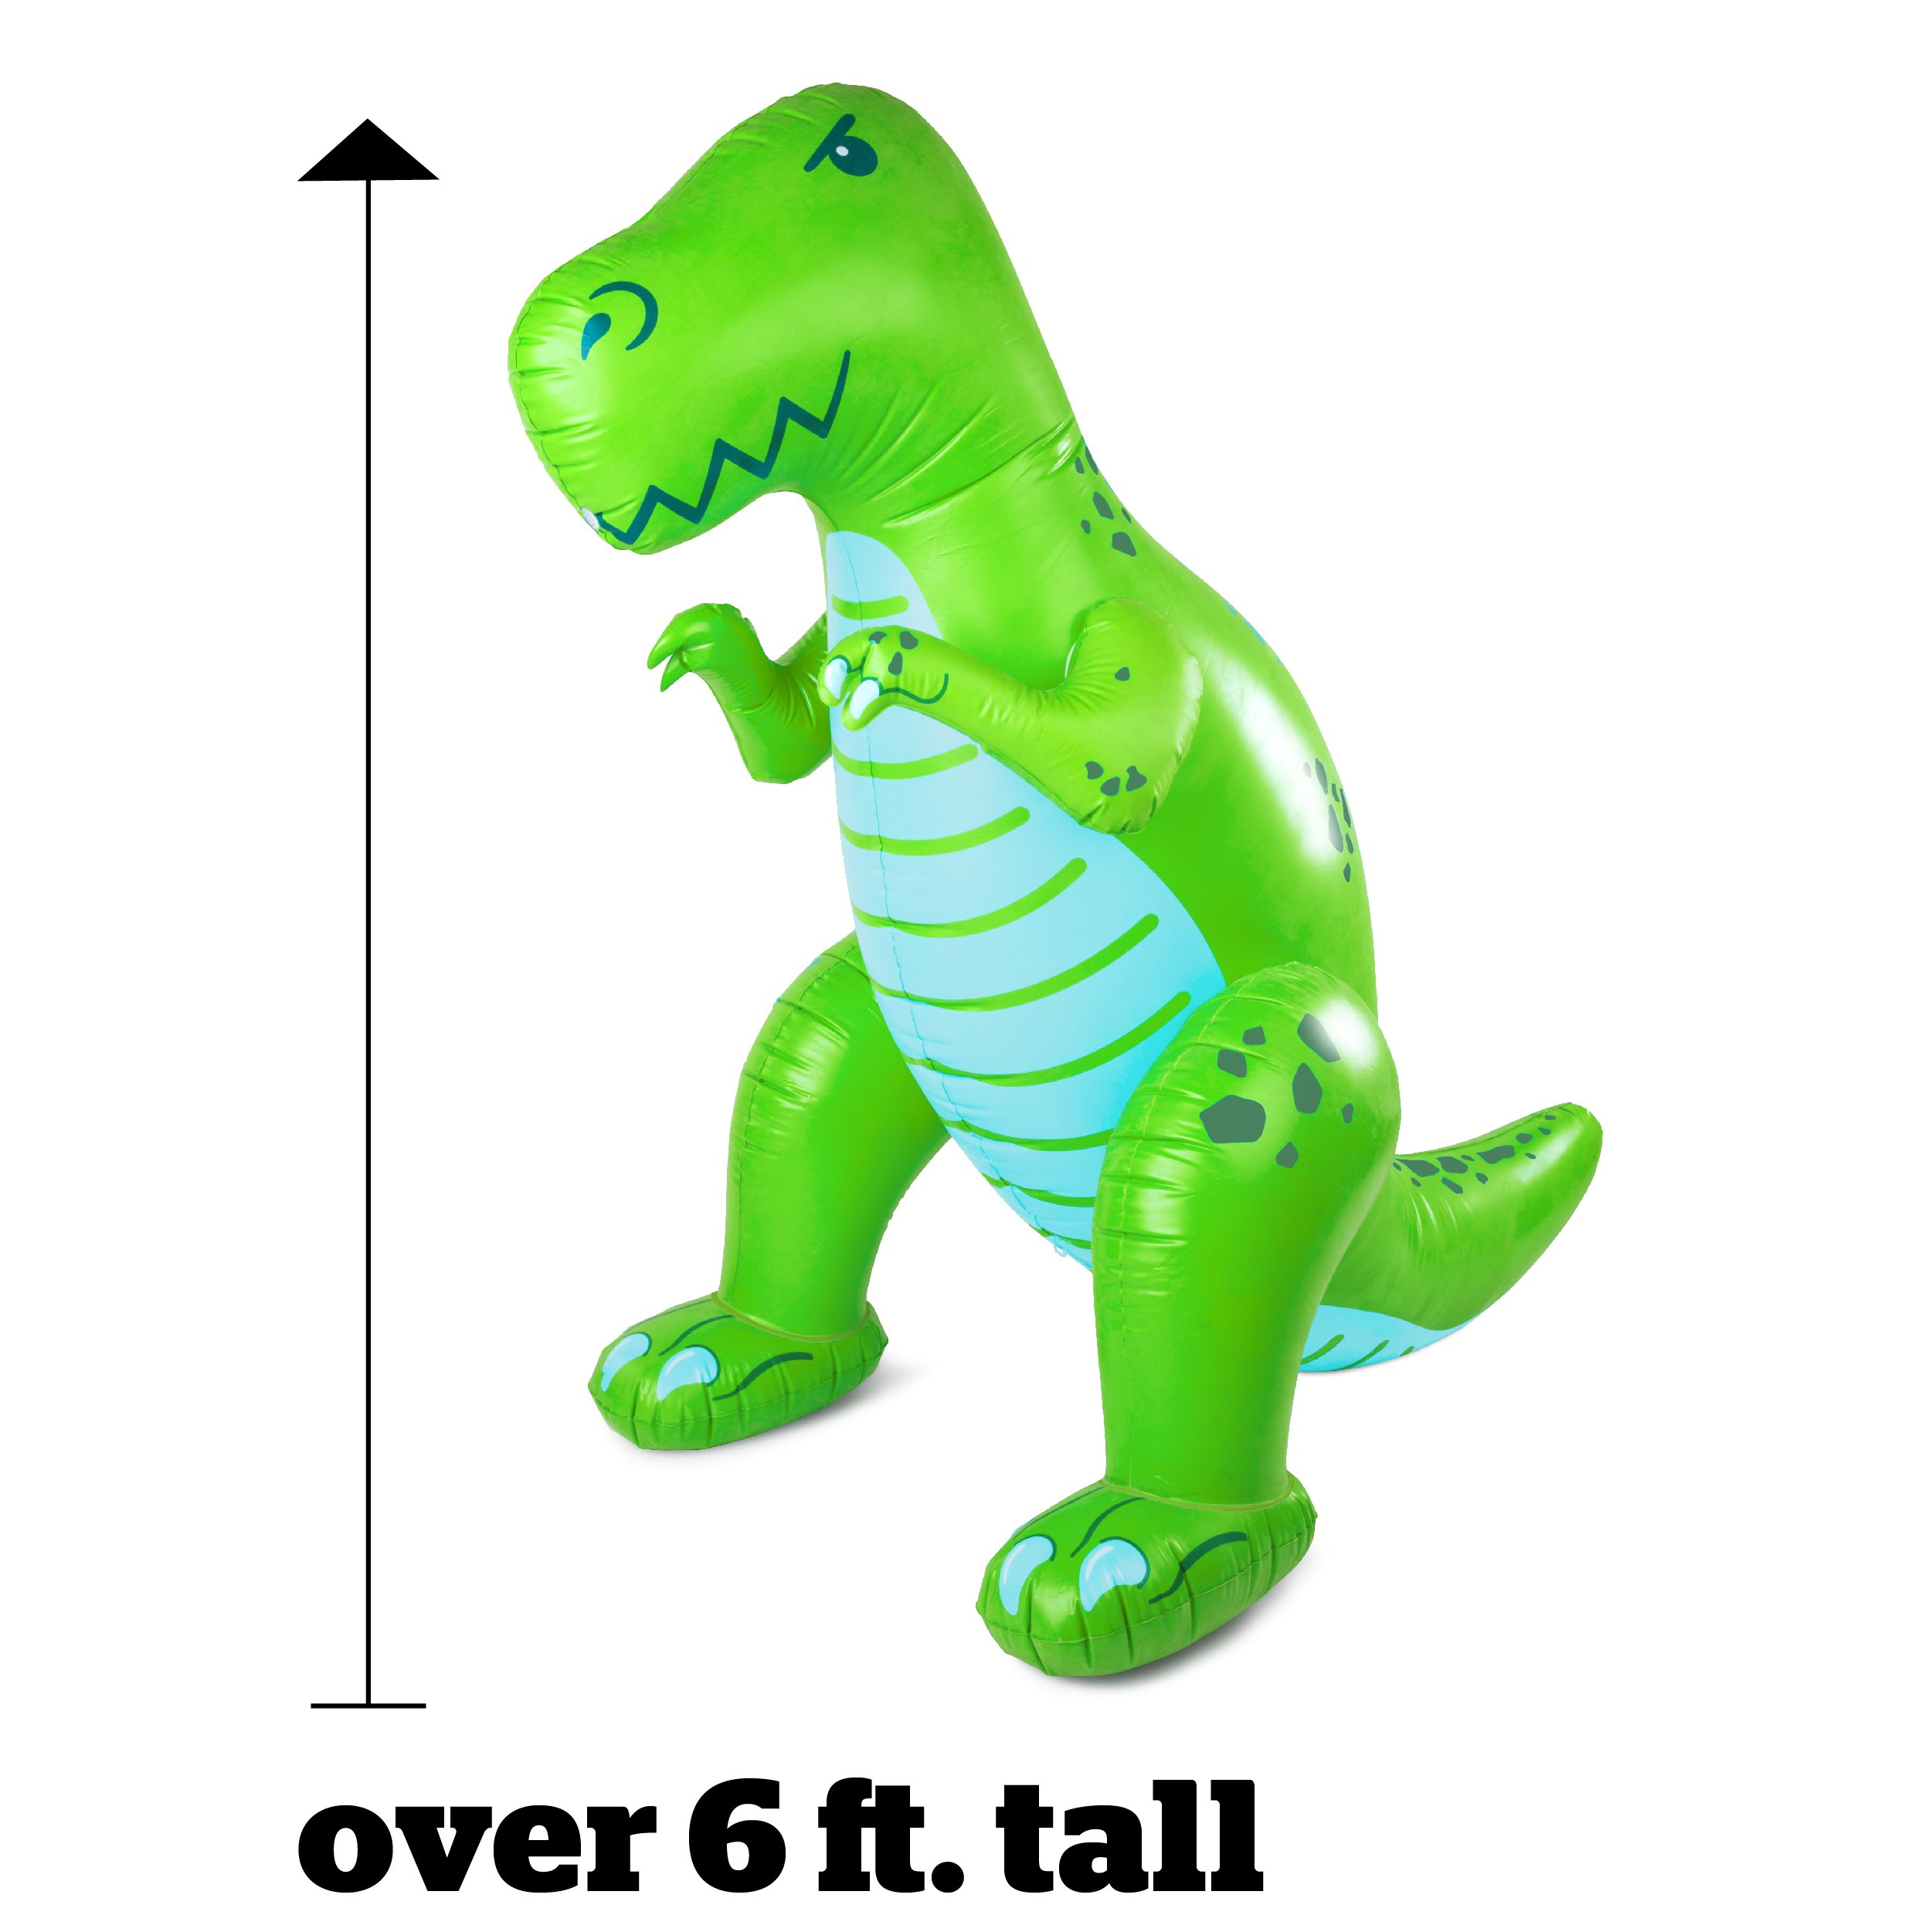 BigMouth Inc. Ginormous Inflatable Green Dinosaur Yard Summer Sprinkler, Stands Over 6 Feet Tall, Perfect for Summer Fun by BigMouth Inc (Image #3)